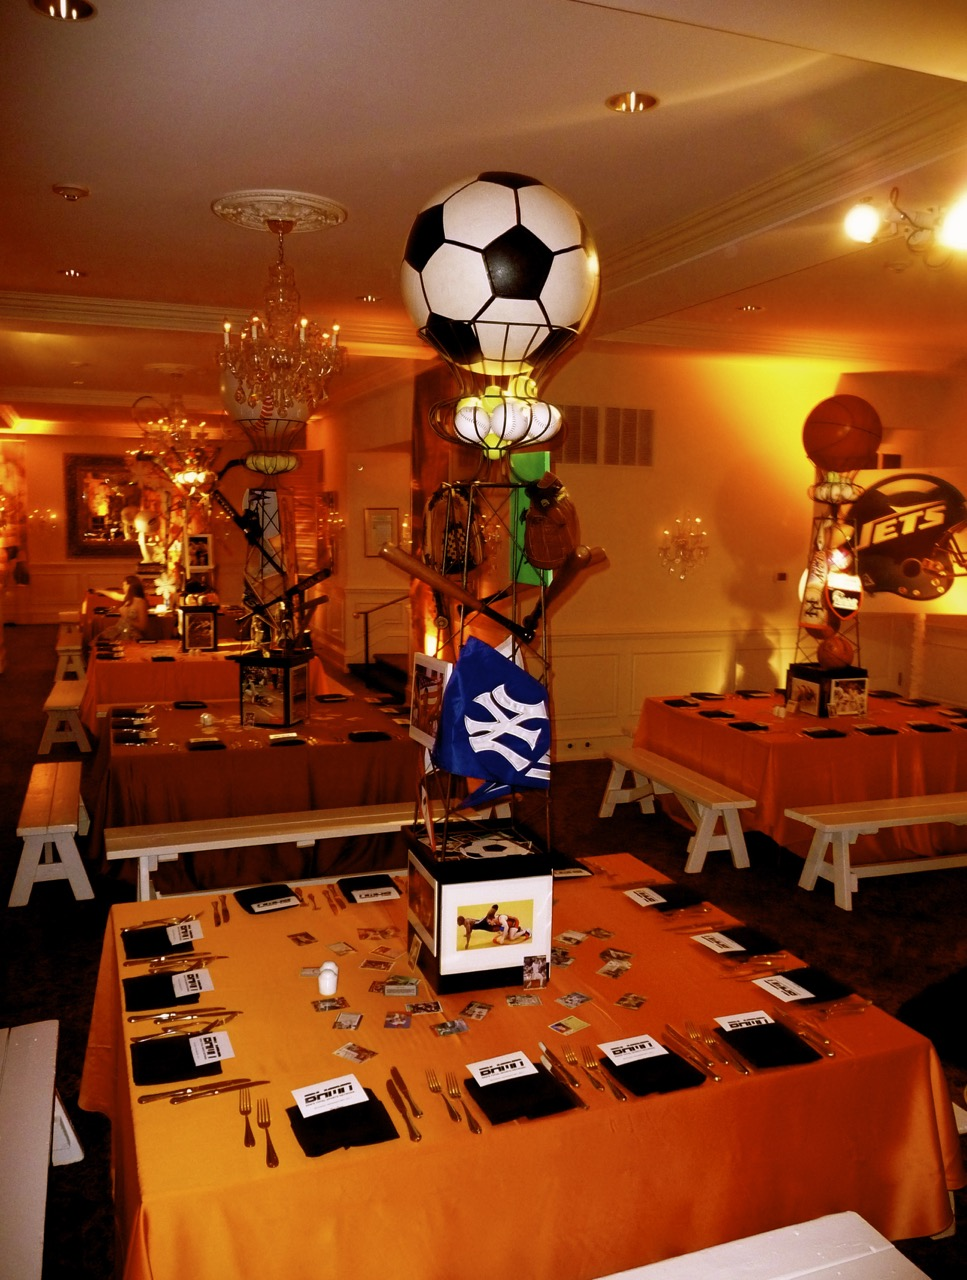 Sports Theme Centerpieces Decor and Lighting by Eggsotic Events NJ Event Design and Decor Rental  - 4.jpg